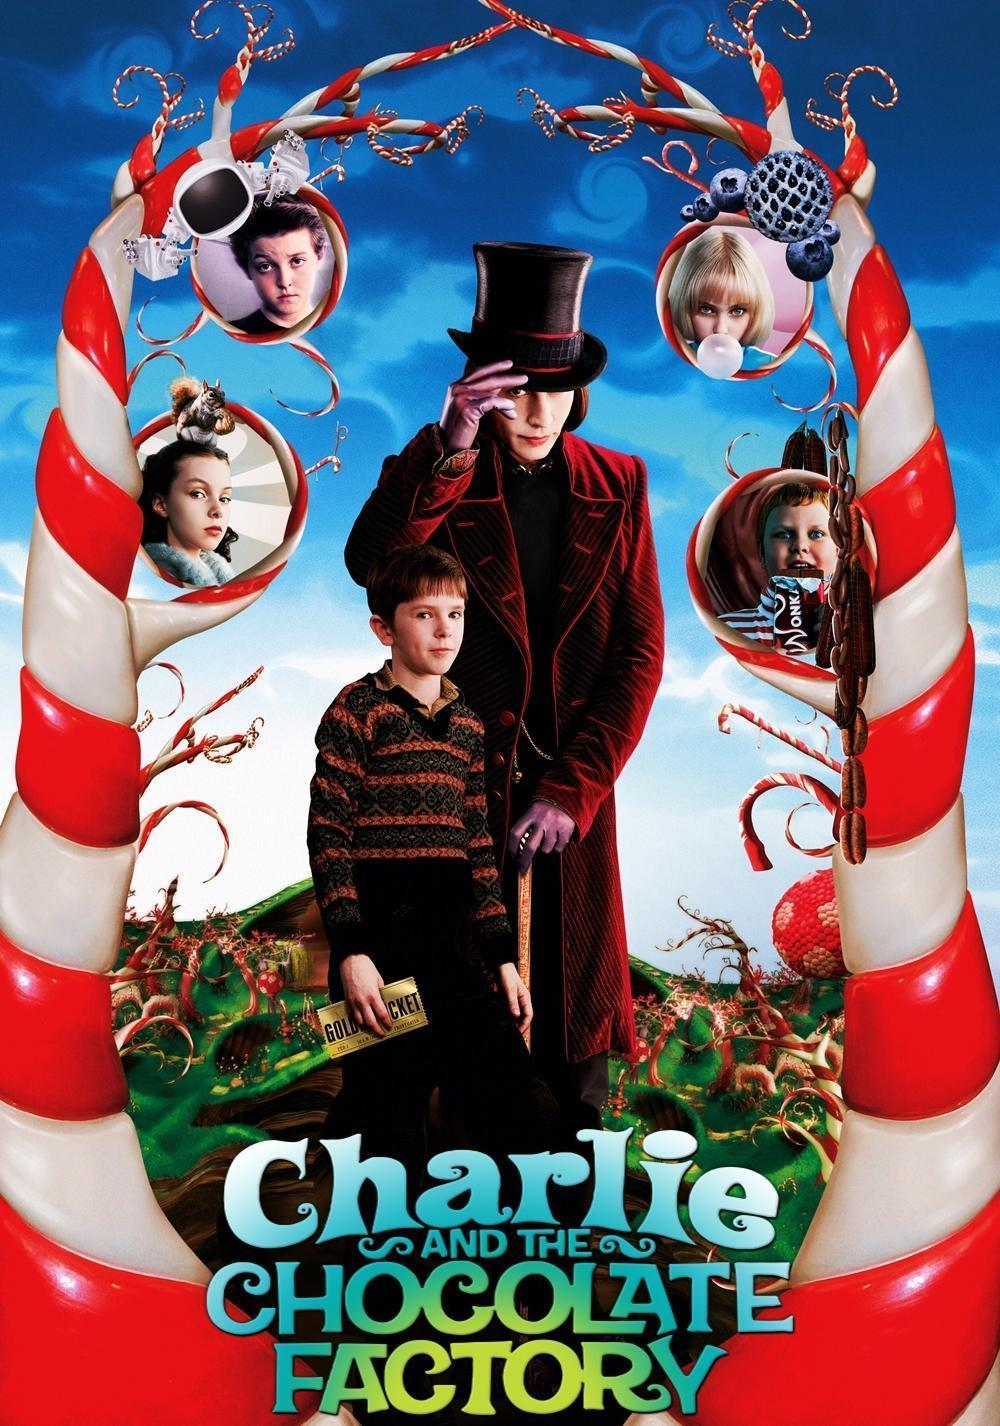 20 Interesting facts about the movie Charlie and the Chocolate Factory